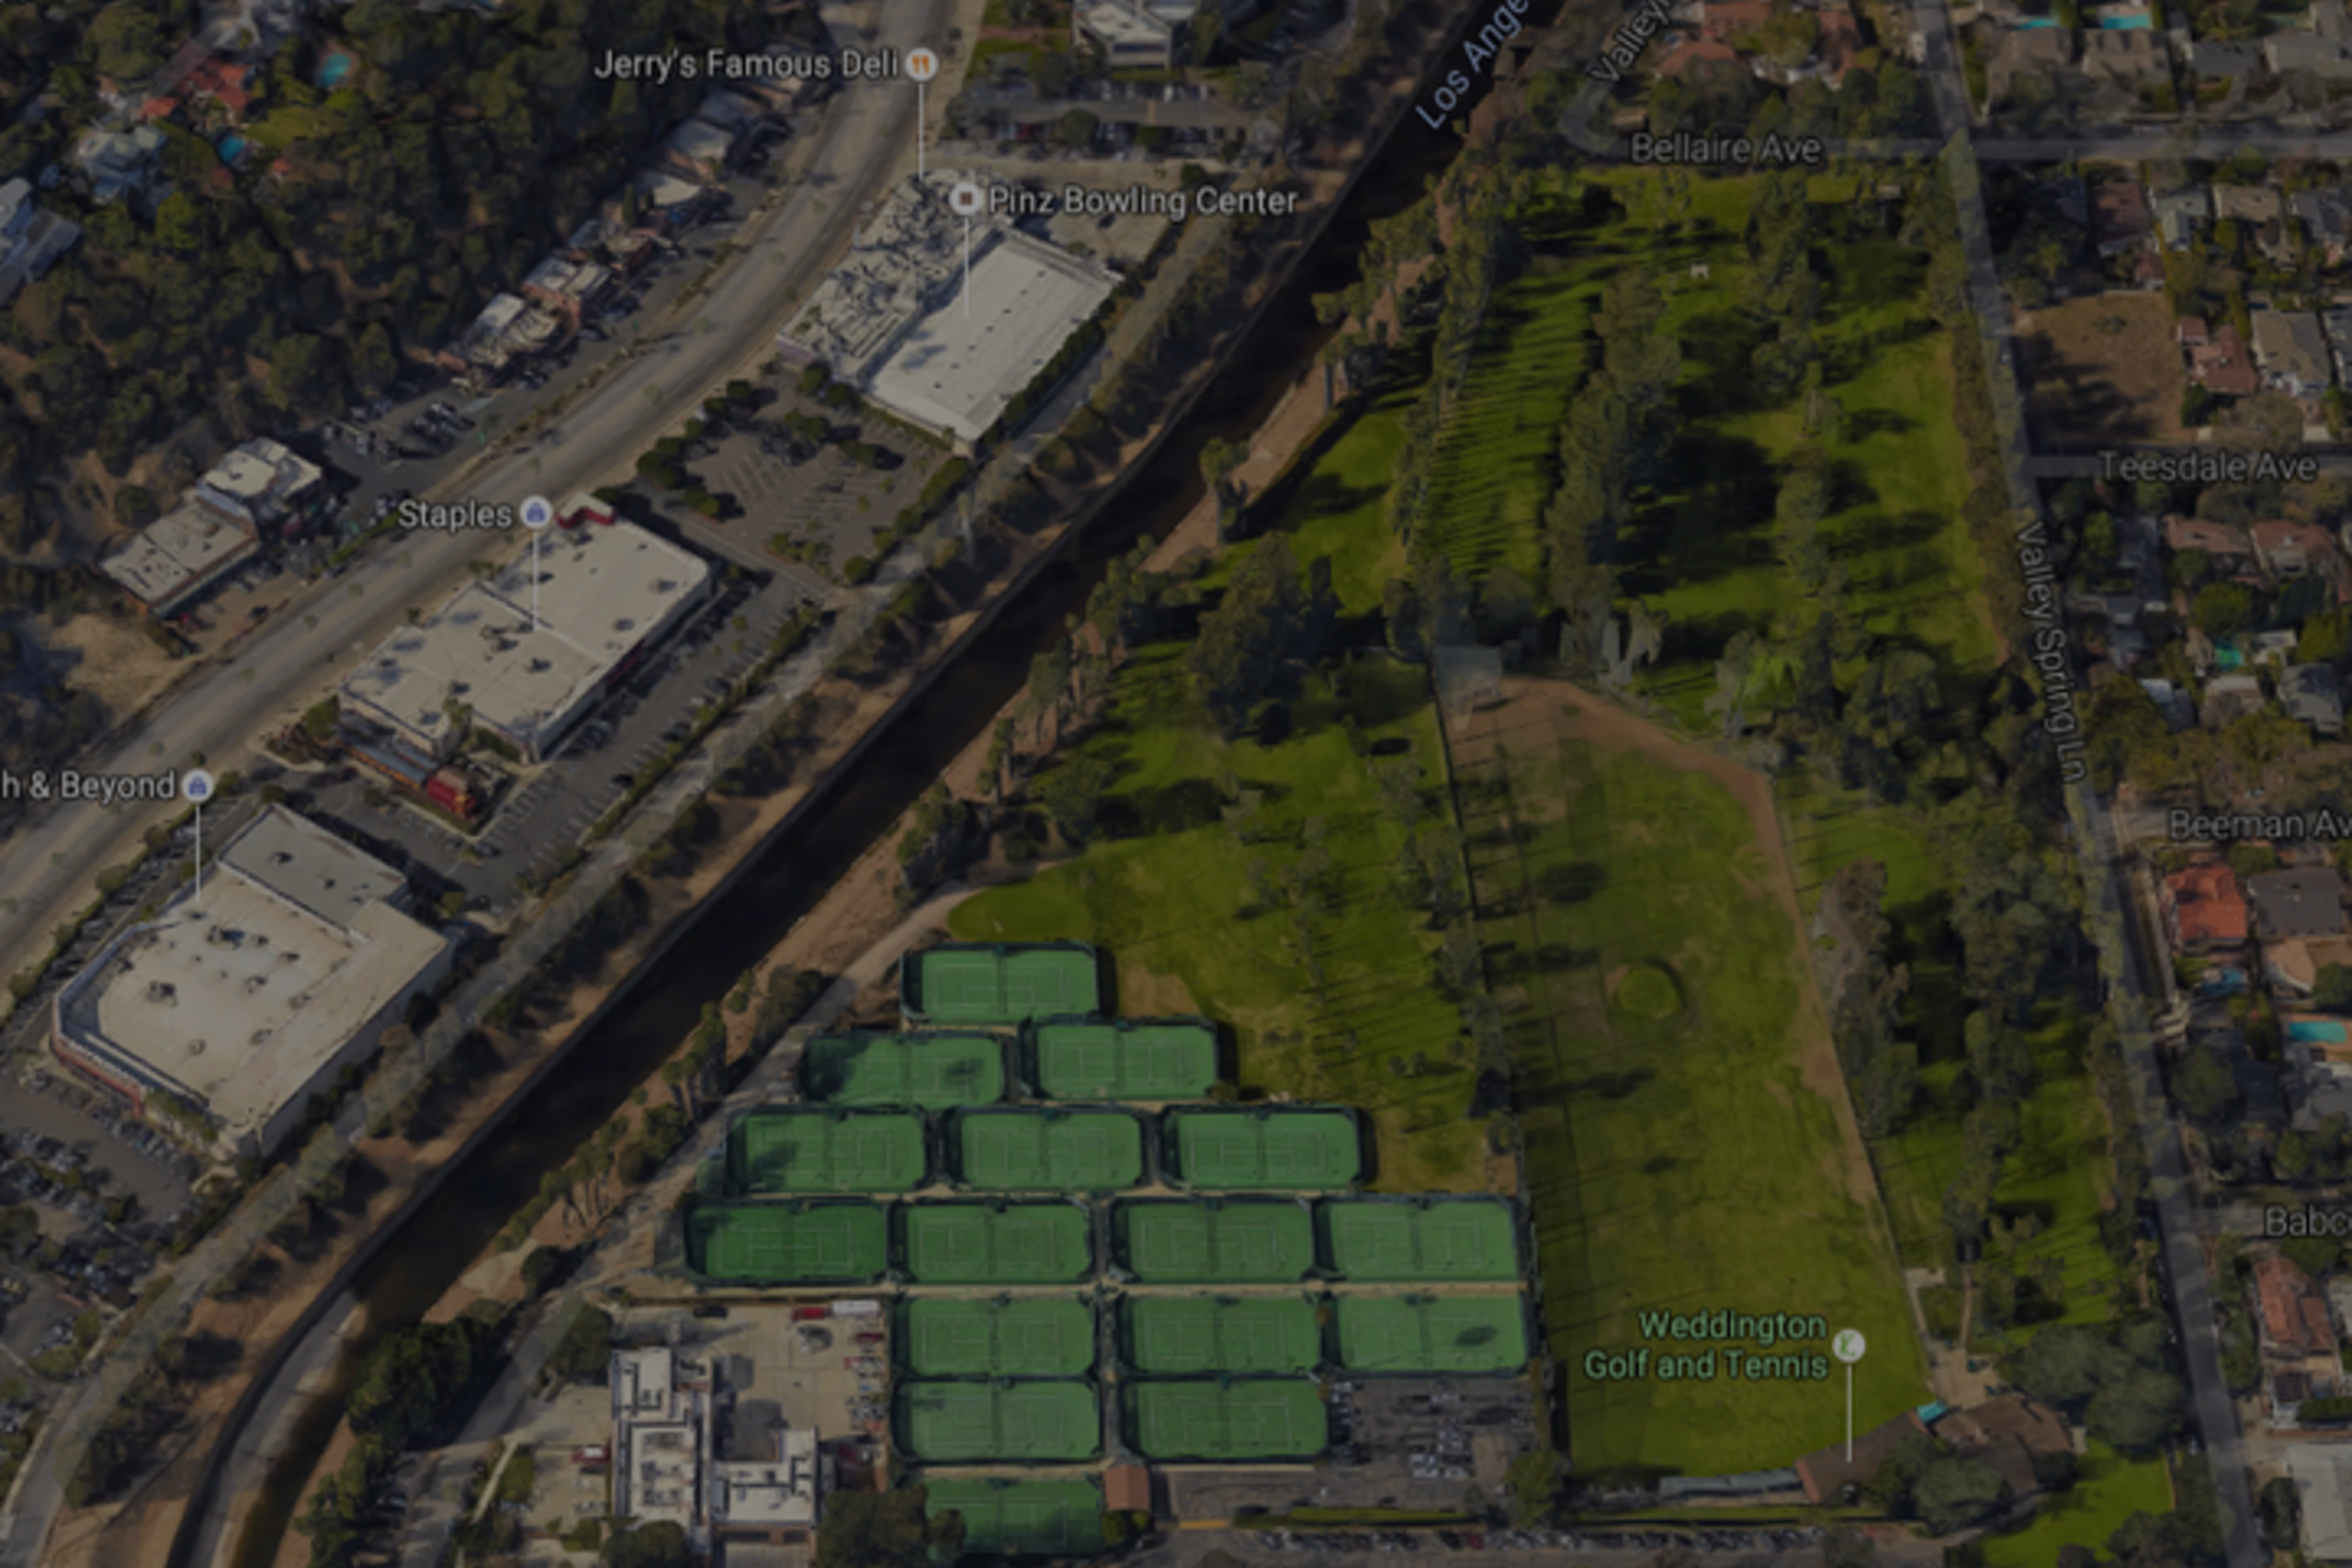 There's a new plan for Studio City's contentious LA River-adjacent golf course